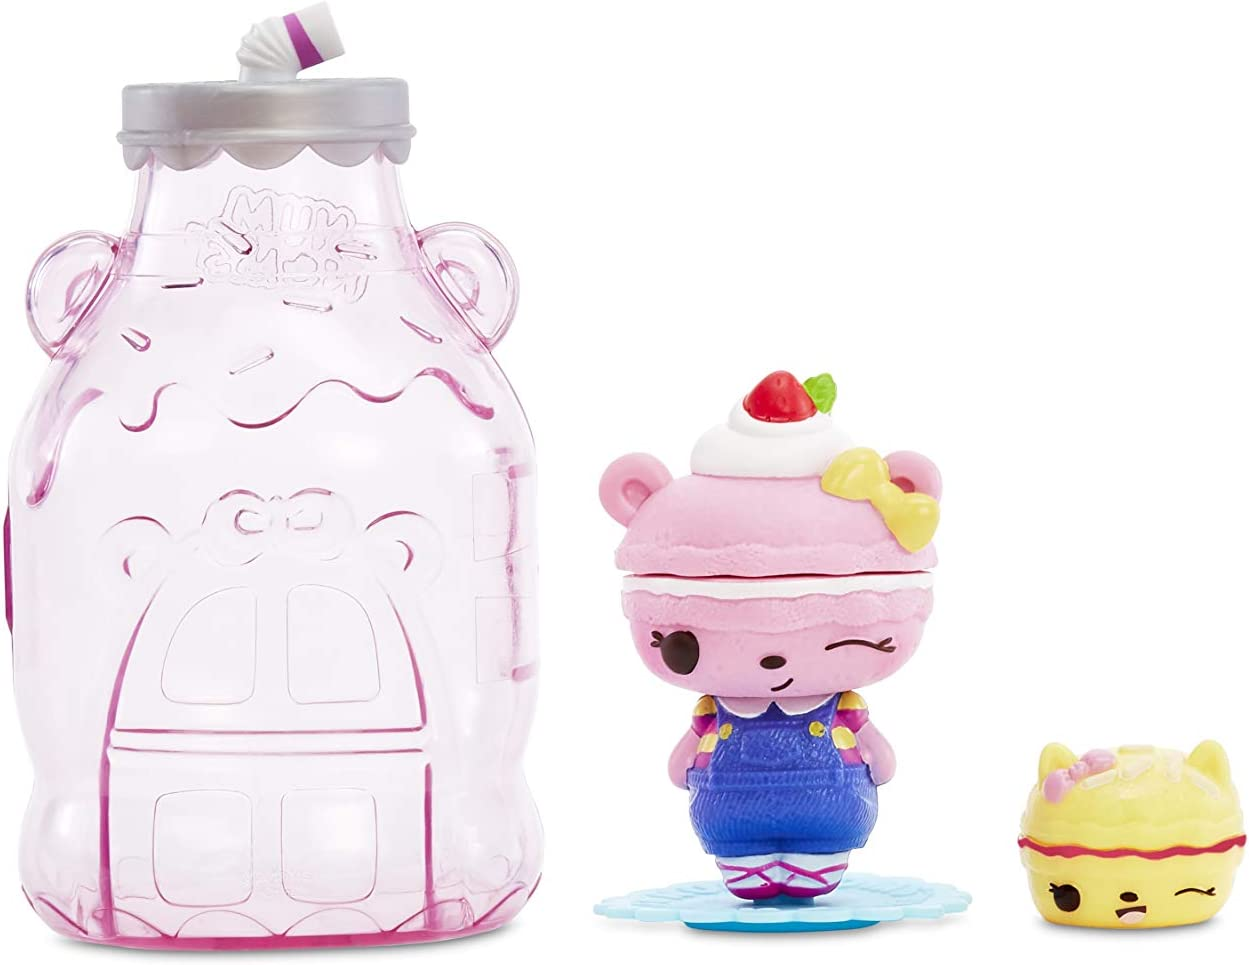 Num Noms Mystery Makeup with Hidden Cosmetics Inside Series 2